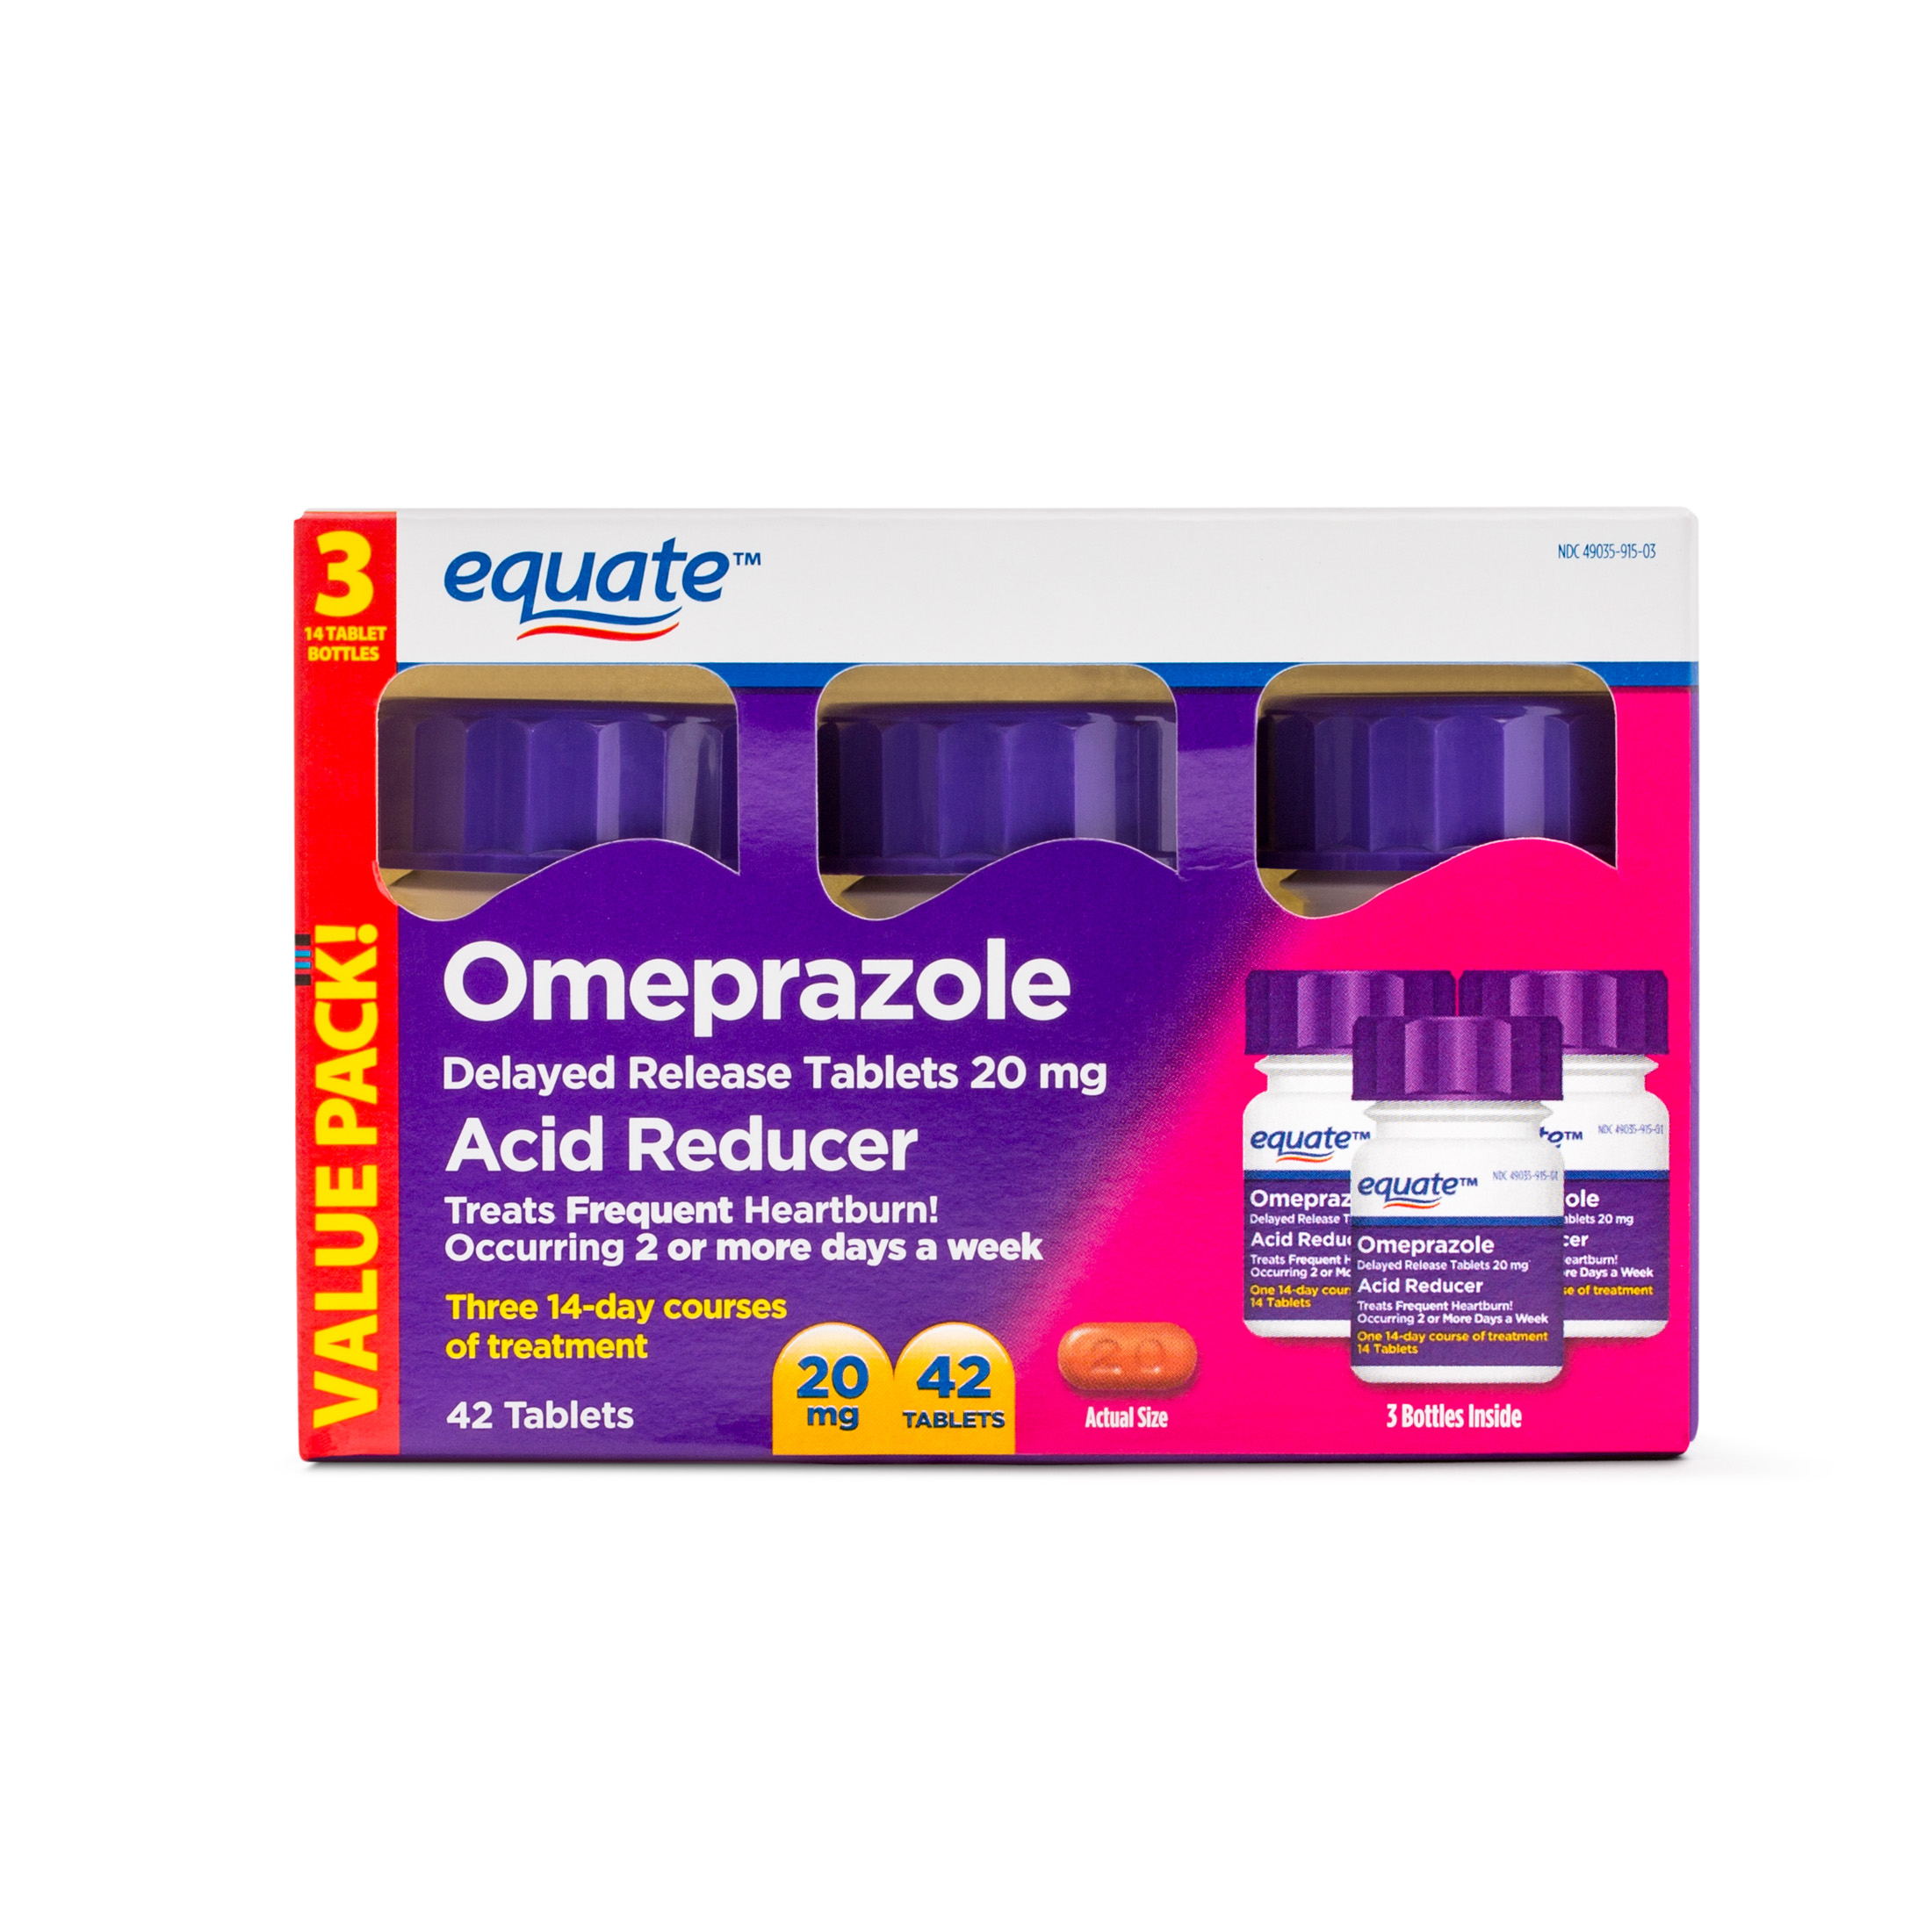 Equate Acid Reducer Omeprazole Delayed Release Tablets, 20 mg, 42 Ct, 3 Pk